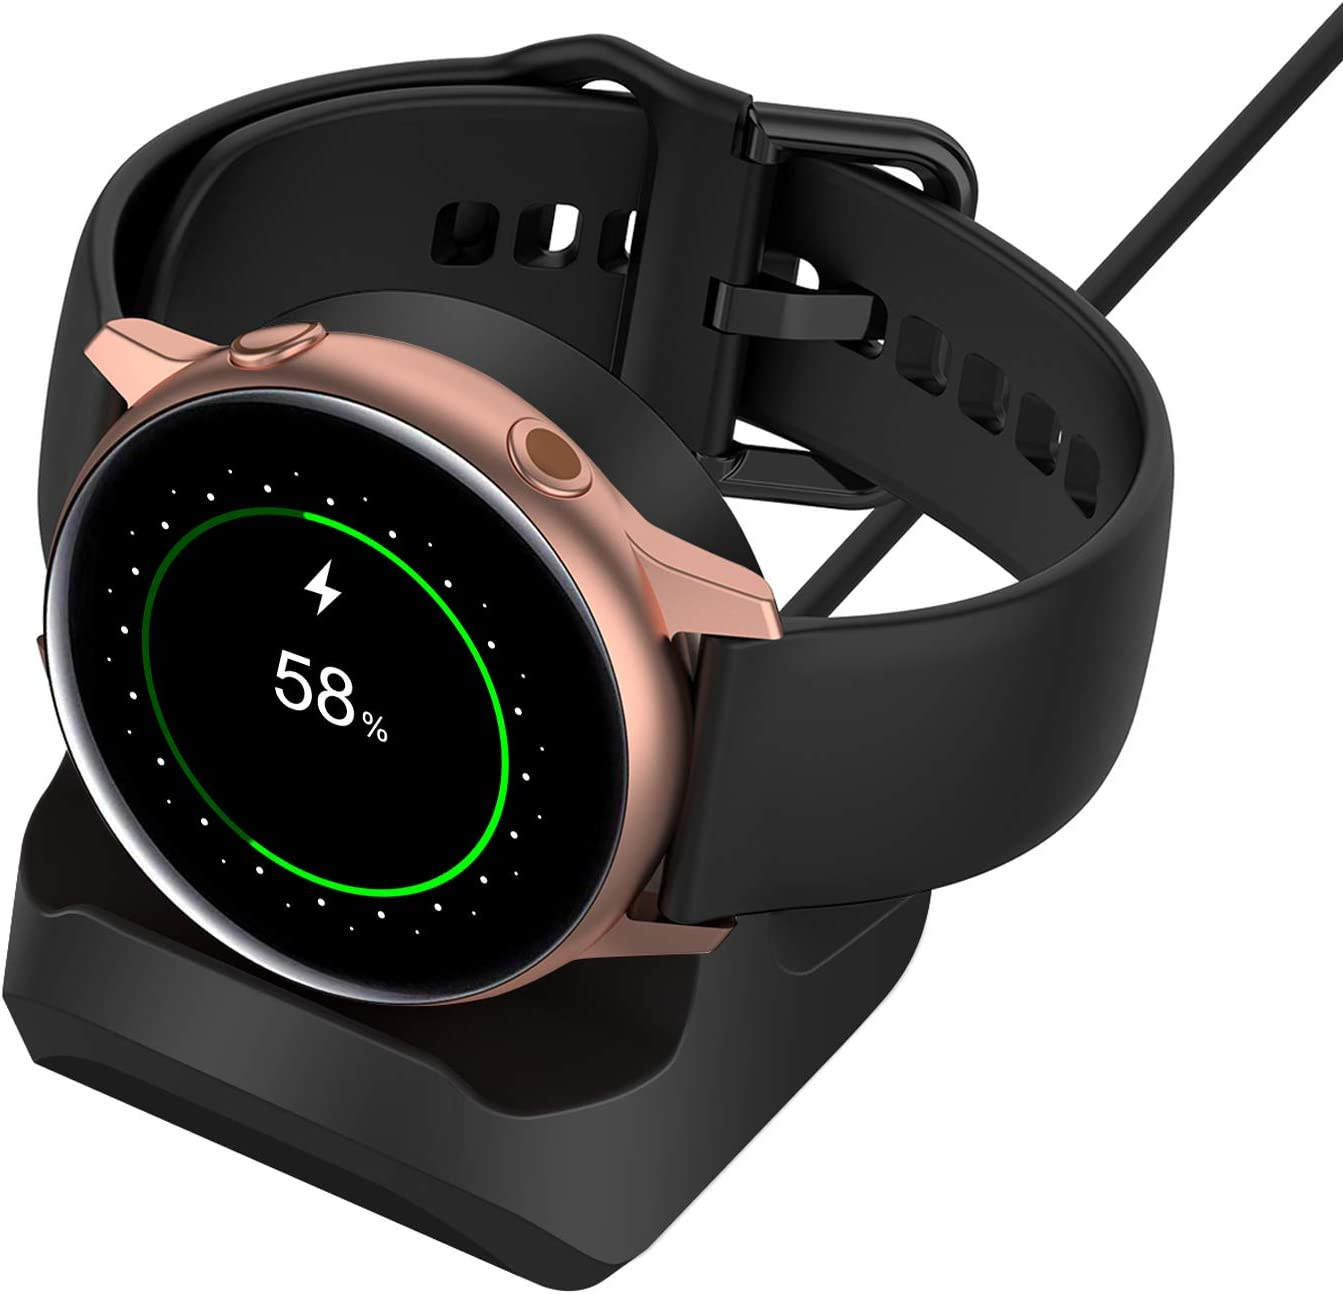 Stand for Samsung Galaxy Watch Non-Slip Silicone Charging Dock Holder